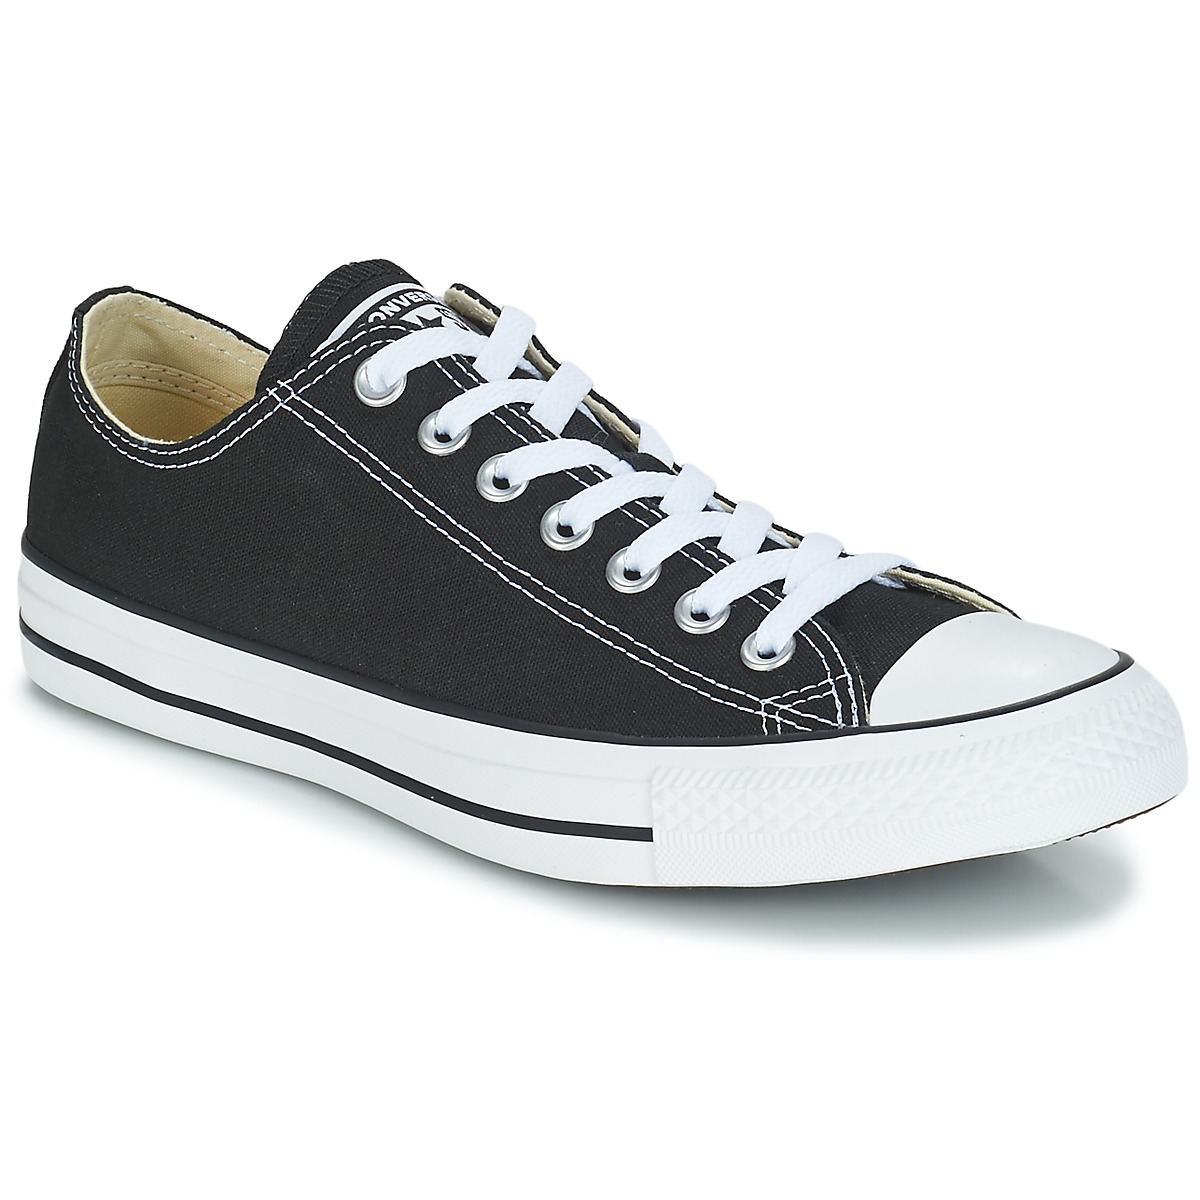 CT II Ox, Baskets Basses Homme, Noir (Black/White/Navy) - 37Converse